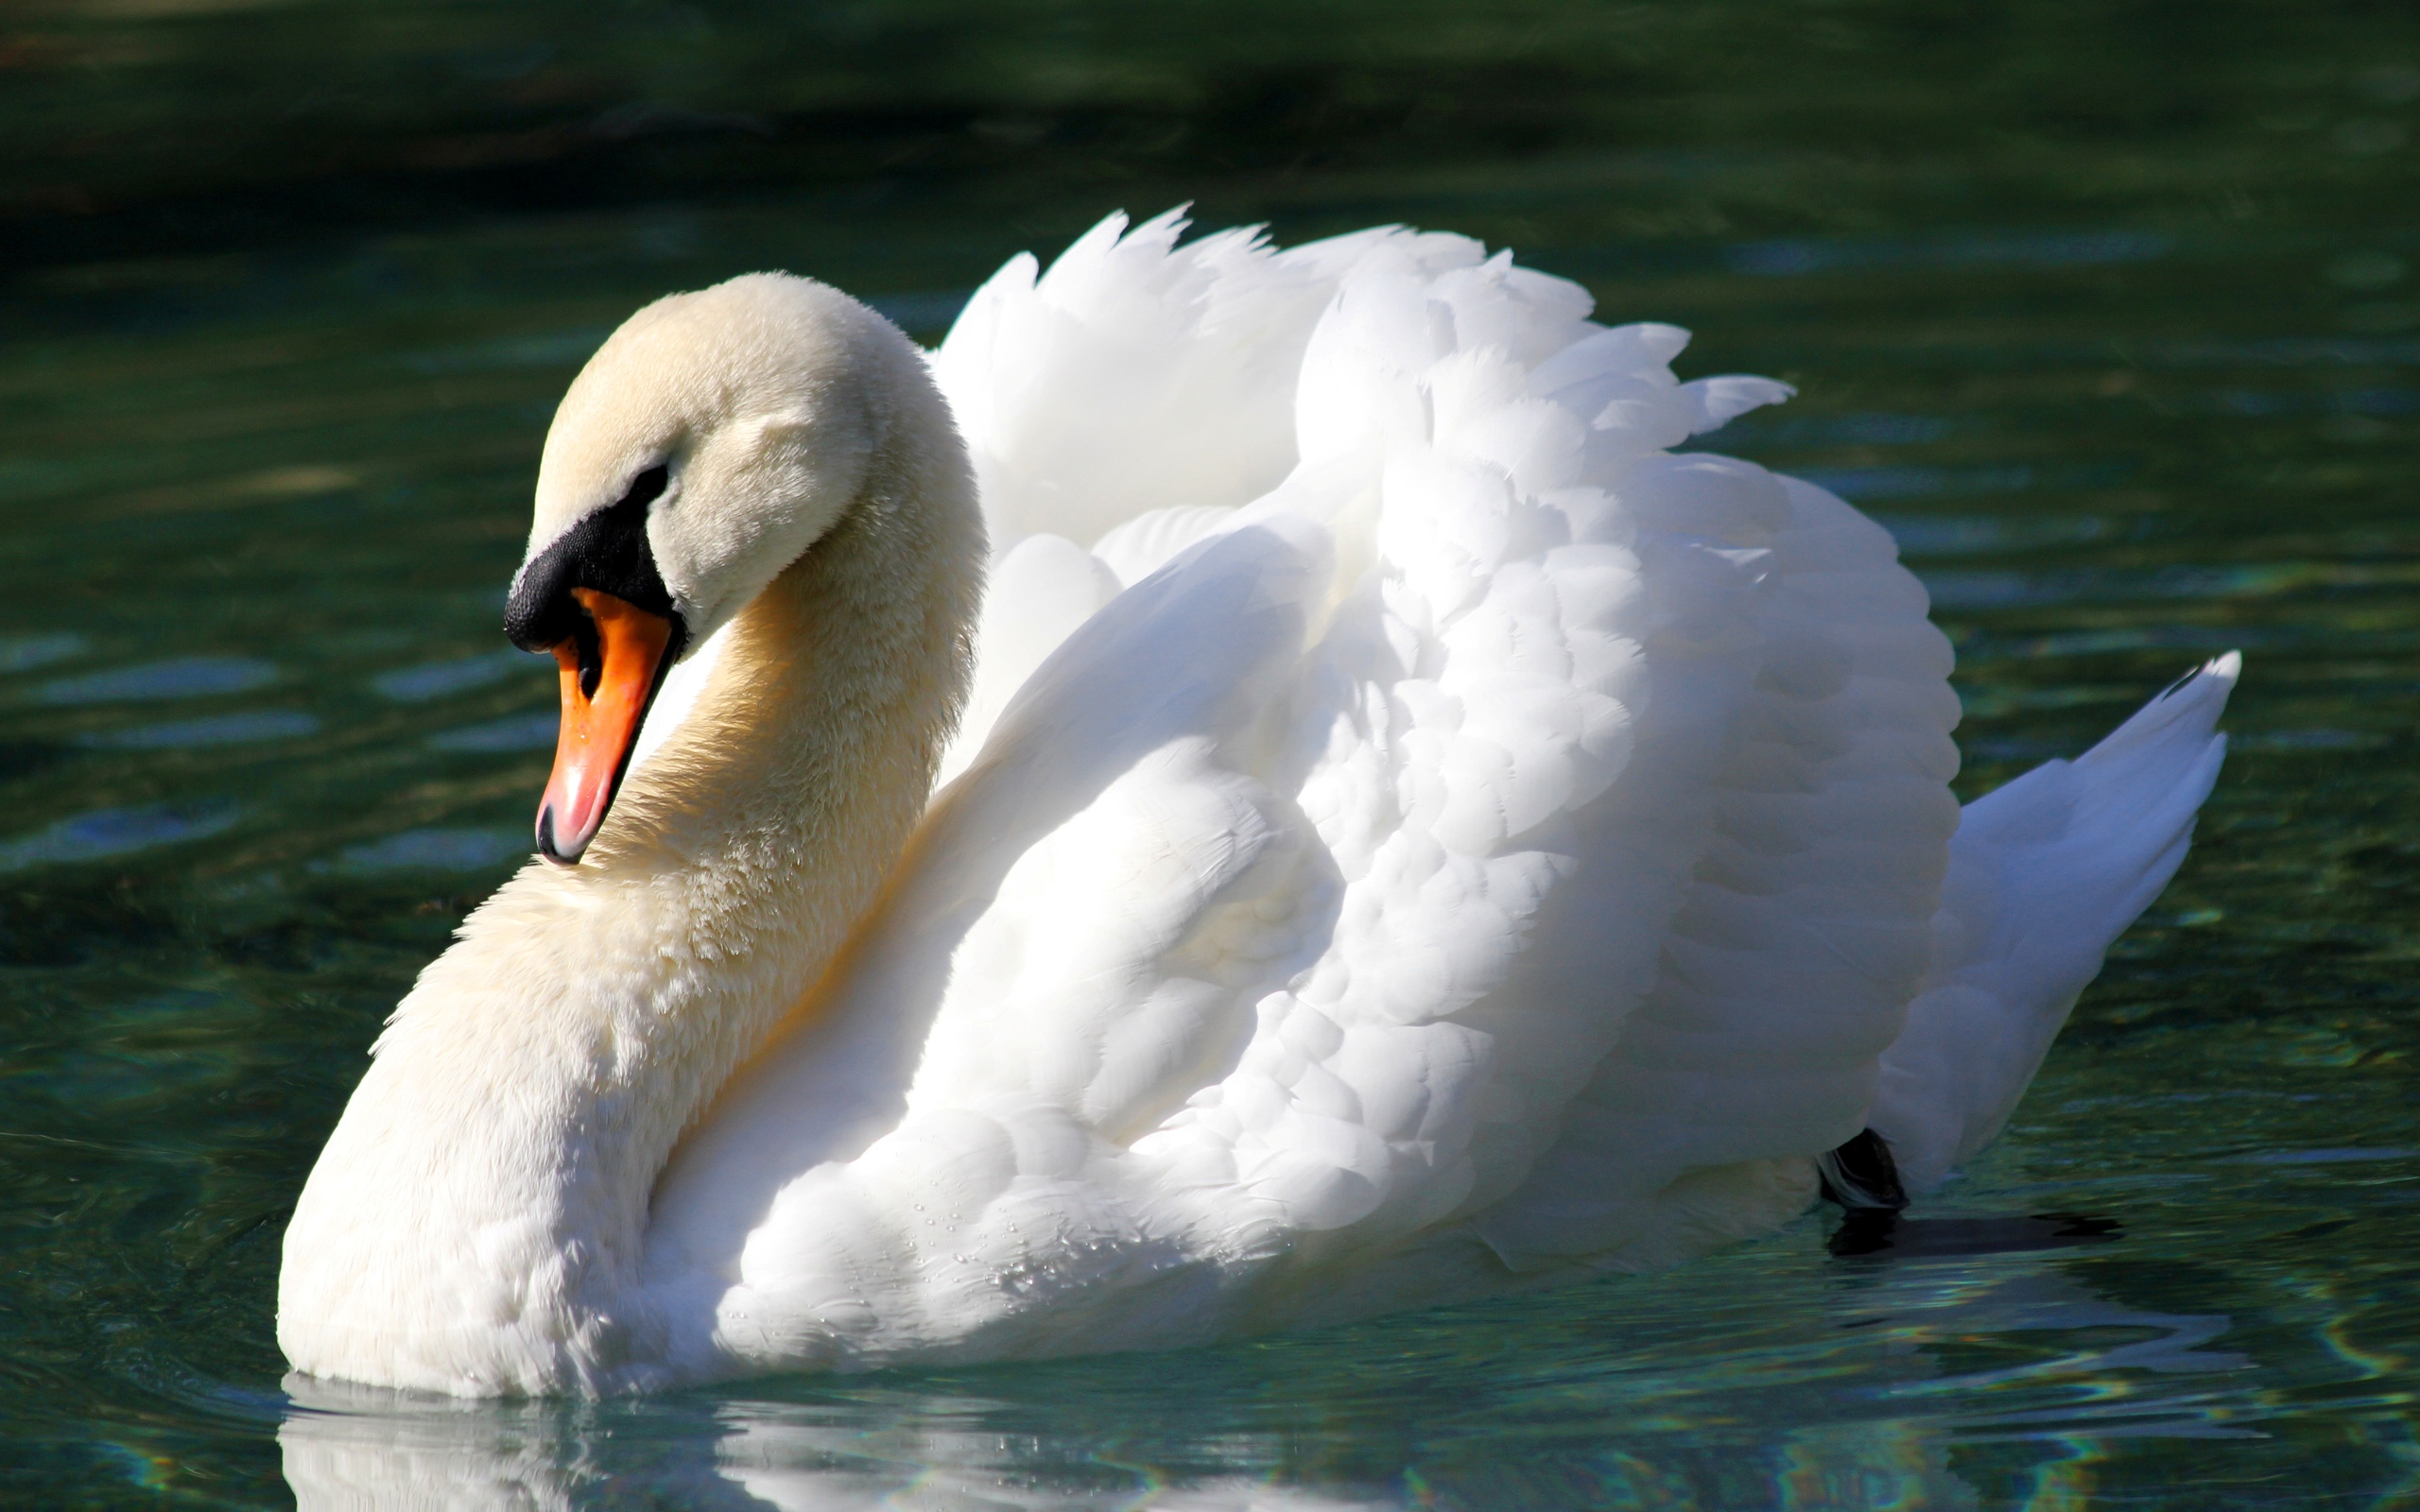 Cute Animal Iphone Wallpaper Mute Swan Full Hd Wallpaper And Background Image